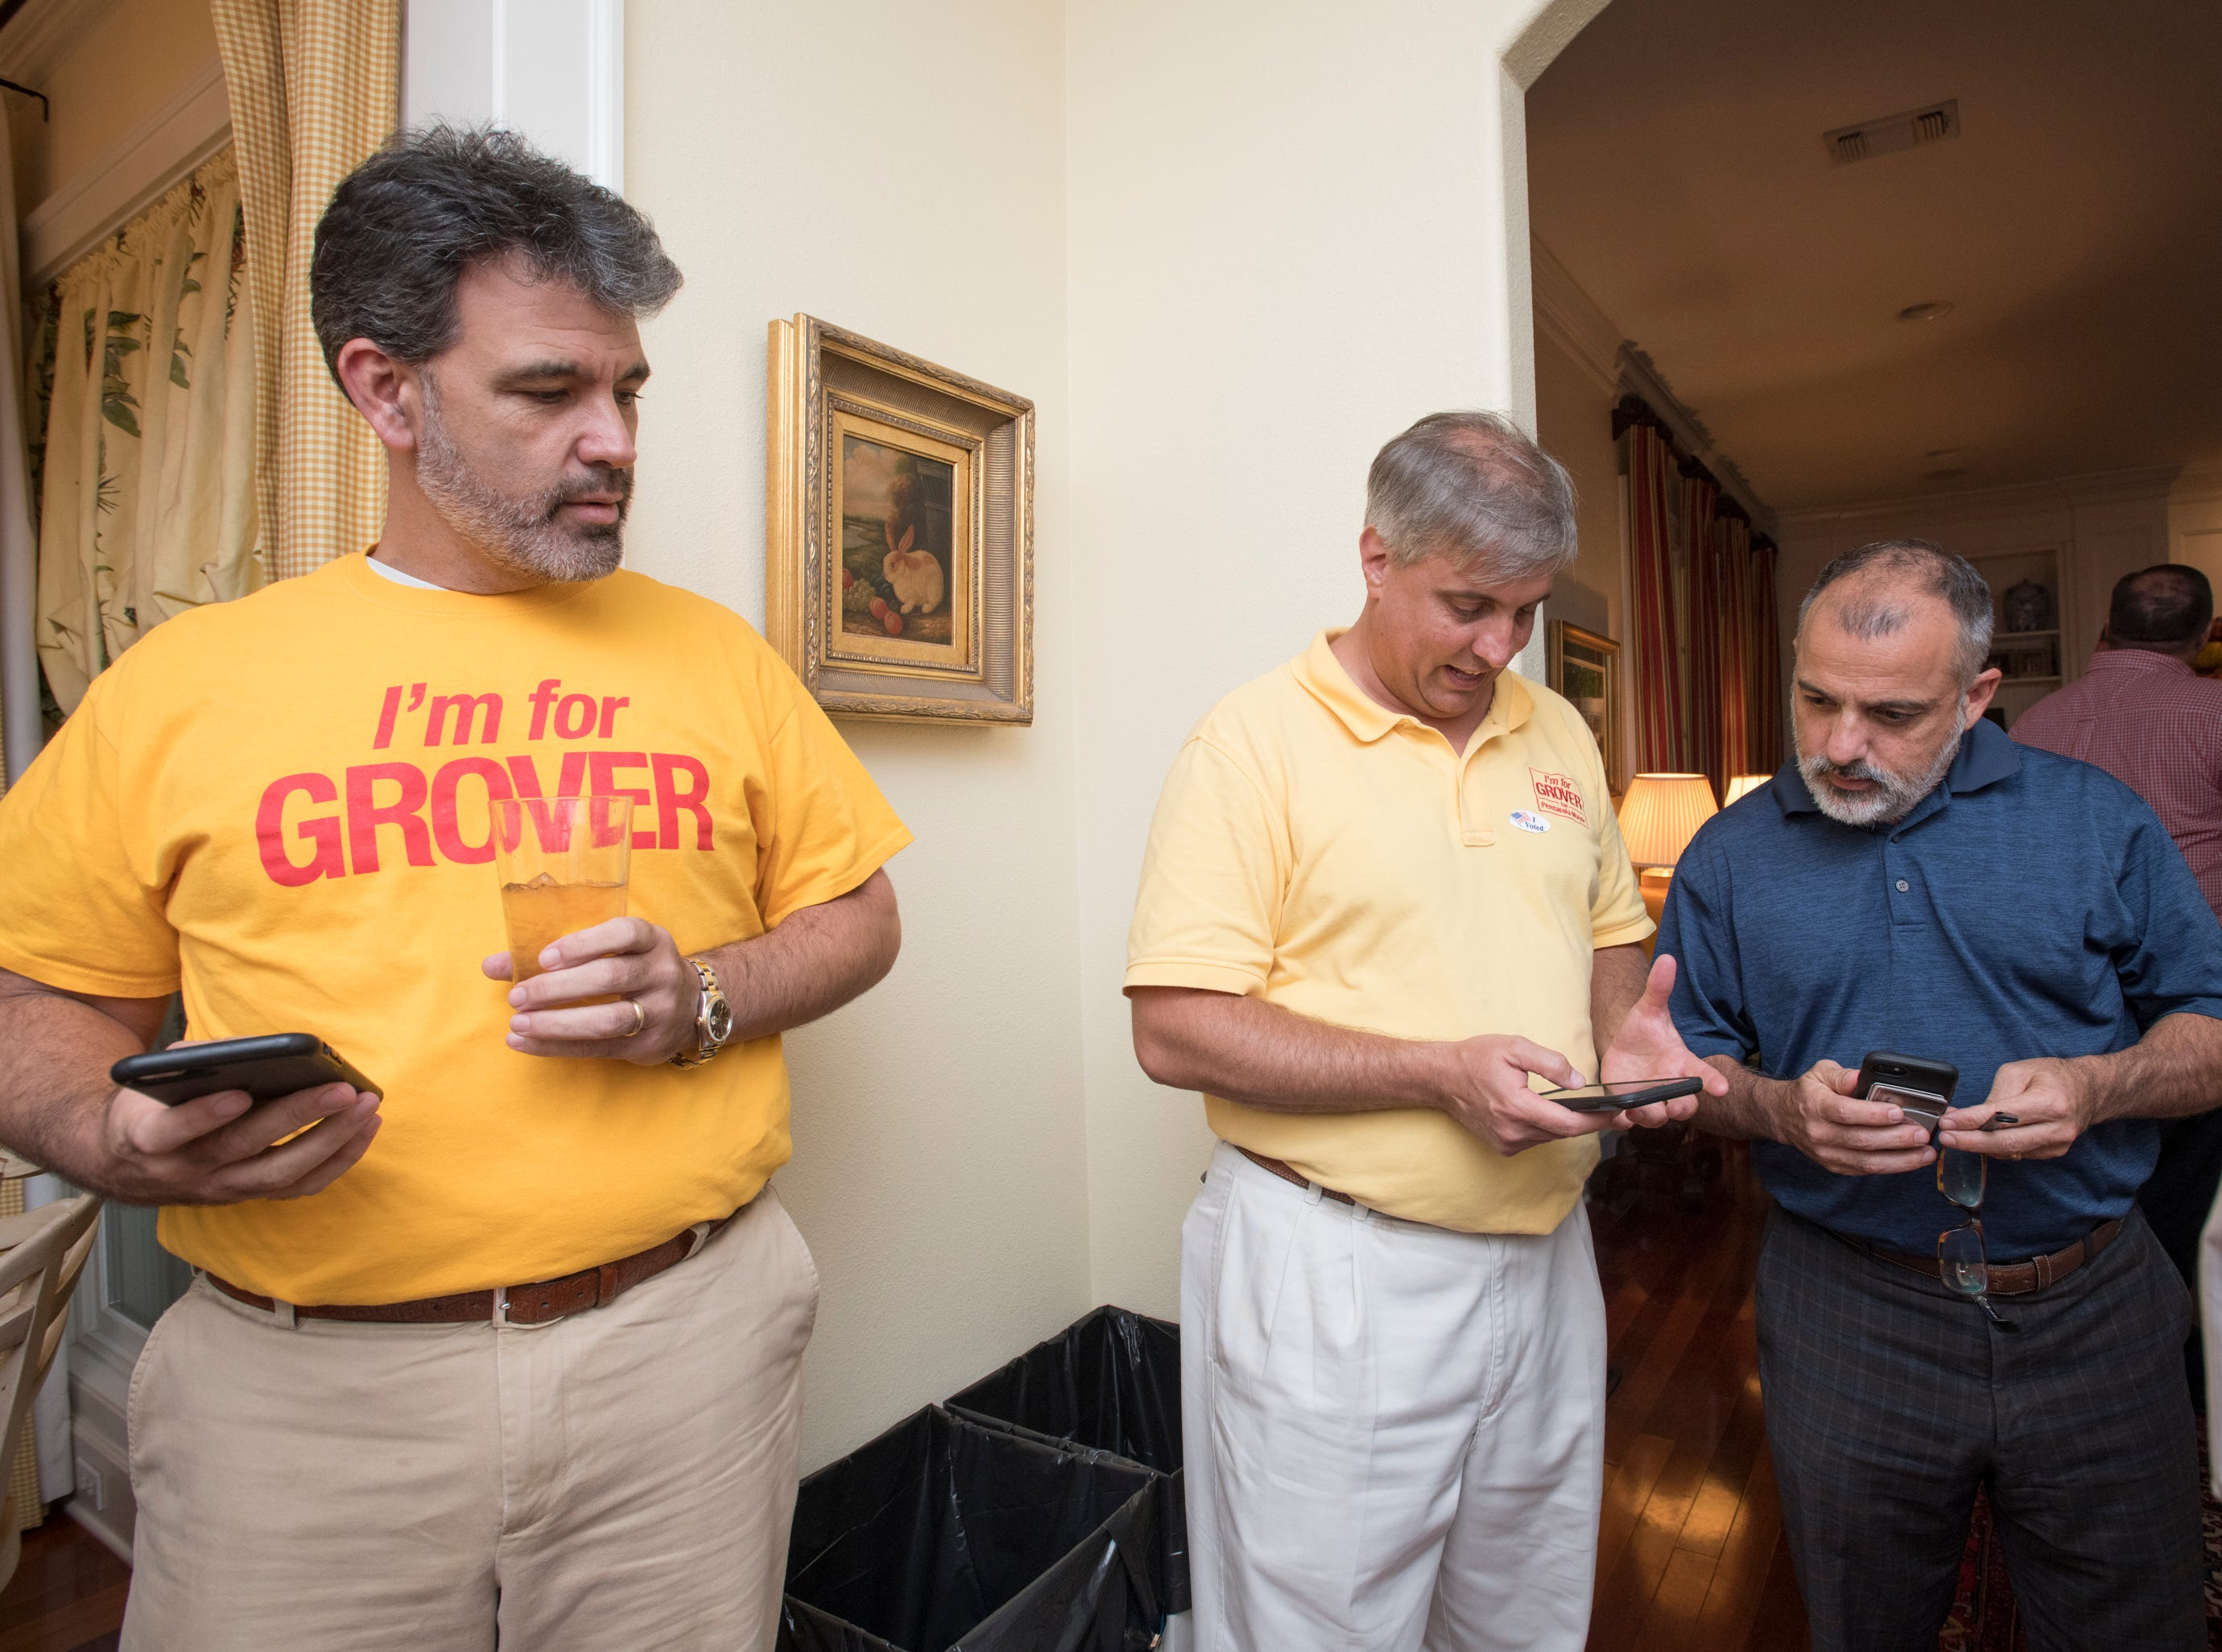 Brett Parra, from left, Grover Robinson, and Michael Carro check the Penscola Mayoral race returns on Election Night in Pensacola on Tuesday, November 6, 2018.